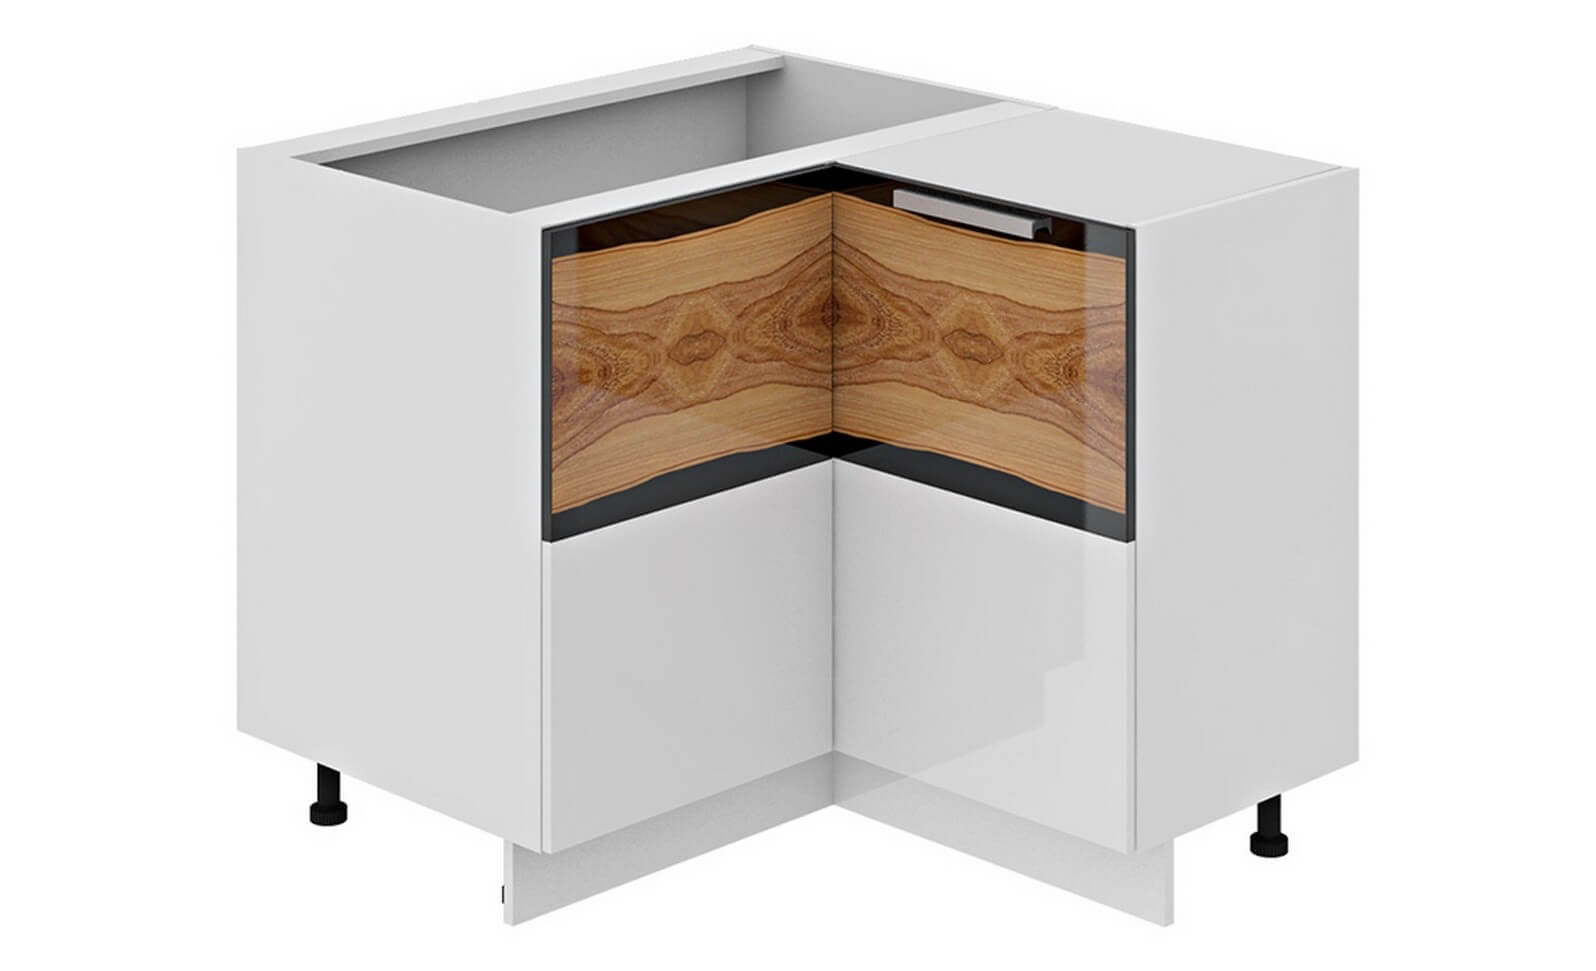 10 Kitchen Custom Custom Cabinets for Unique Functional Interior. Corner cabinet visualisation